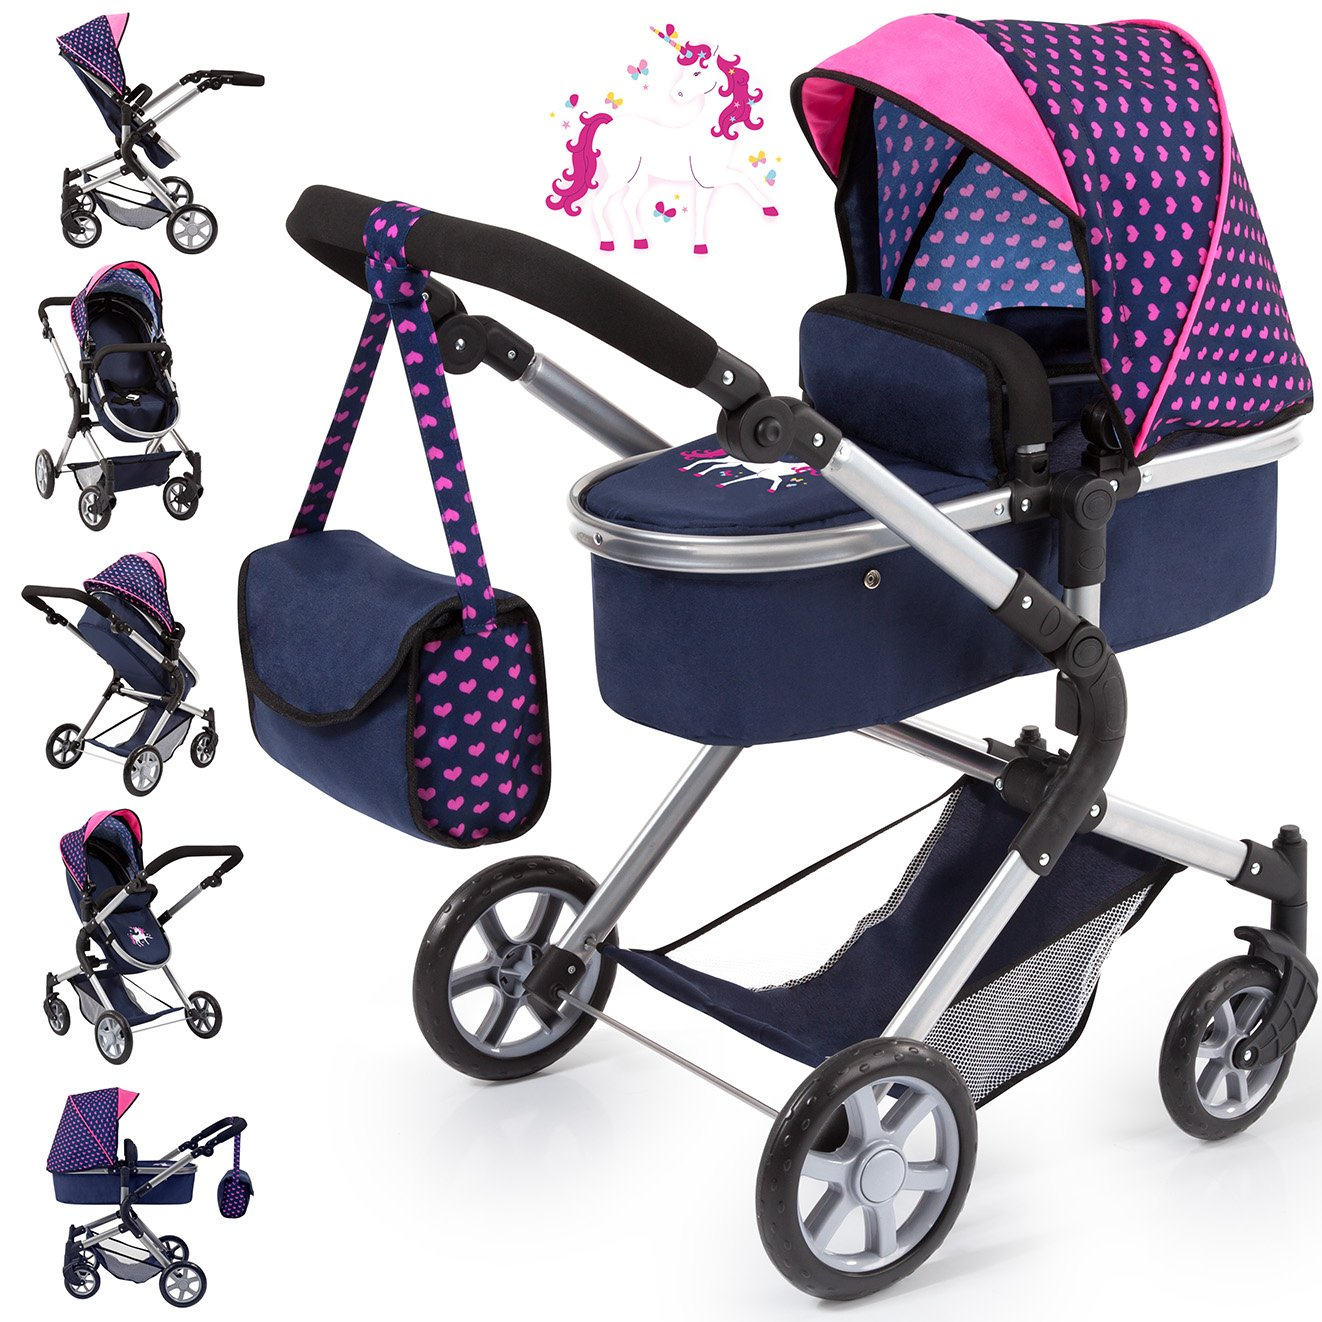 Bayer Design 18154AA City Neo Dolls Pram with Changing Bag, Blue/Pink by Bayer (Image #6)